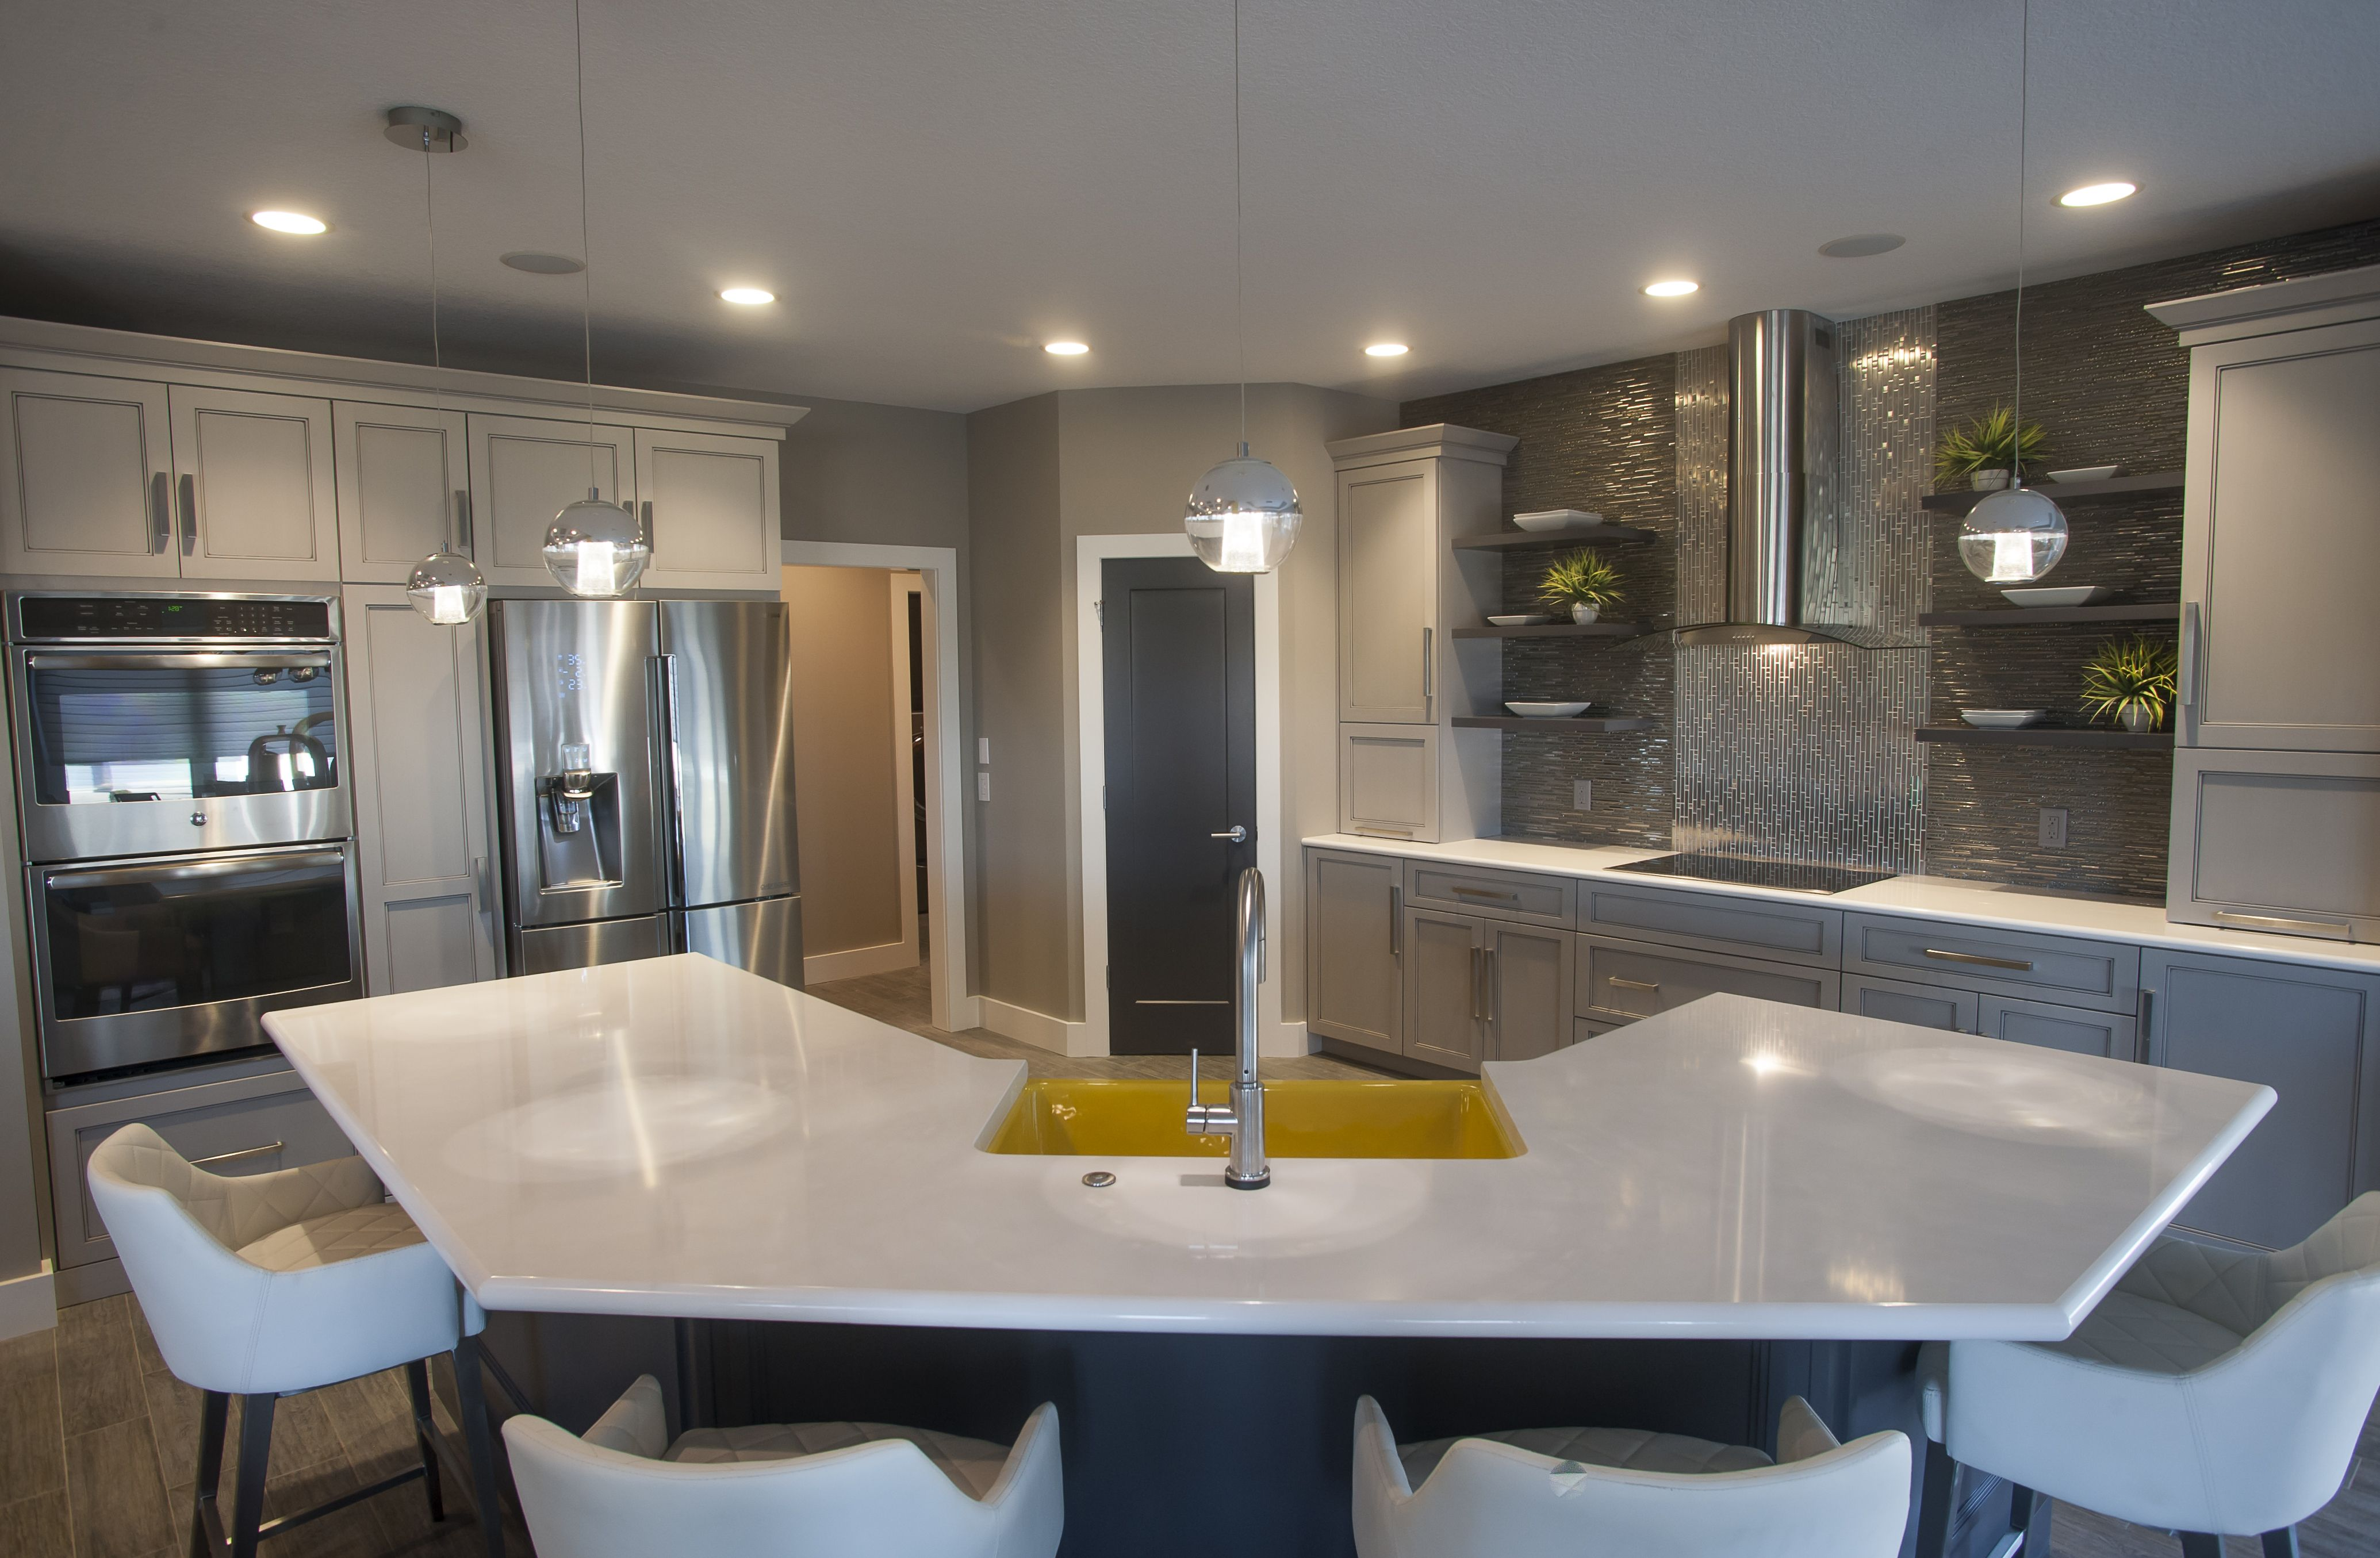 Familiarity Meets Forward Thinking That S How Interior Designer Kayla Hoffman Describes The Design Aesthetic Kitchen Design Ikea Kitchen Modern Kitchen Design